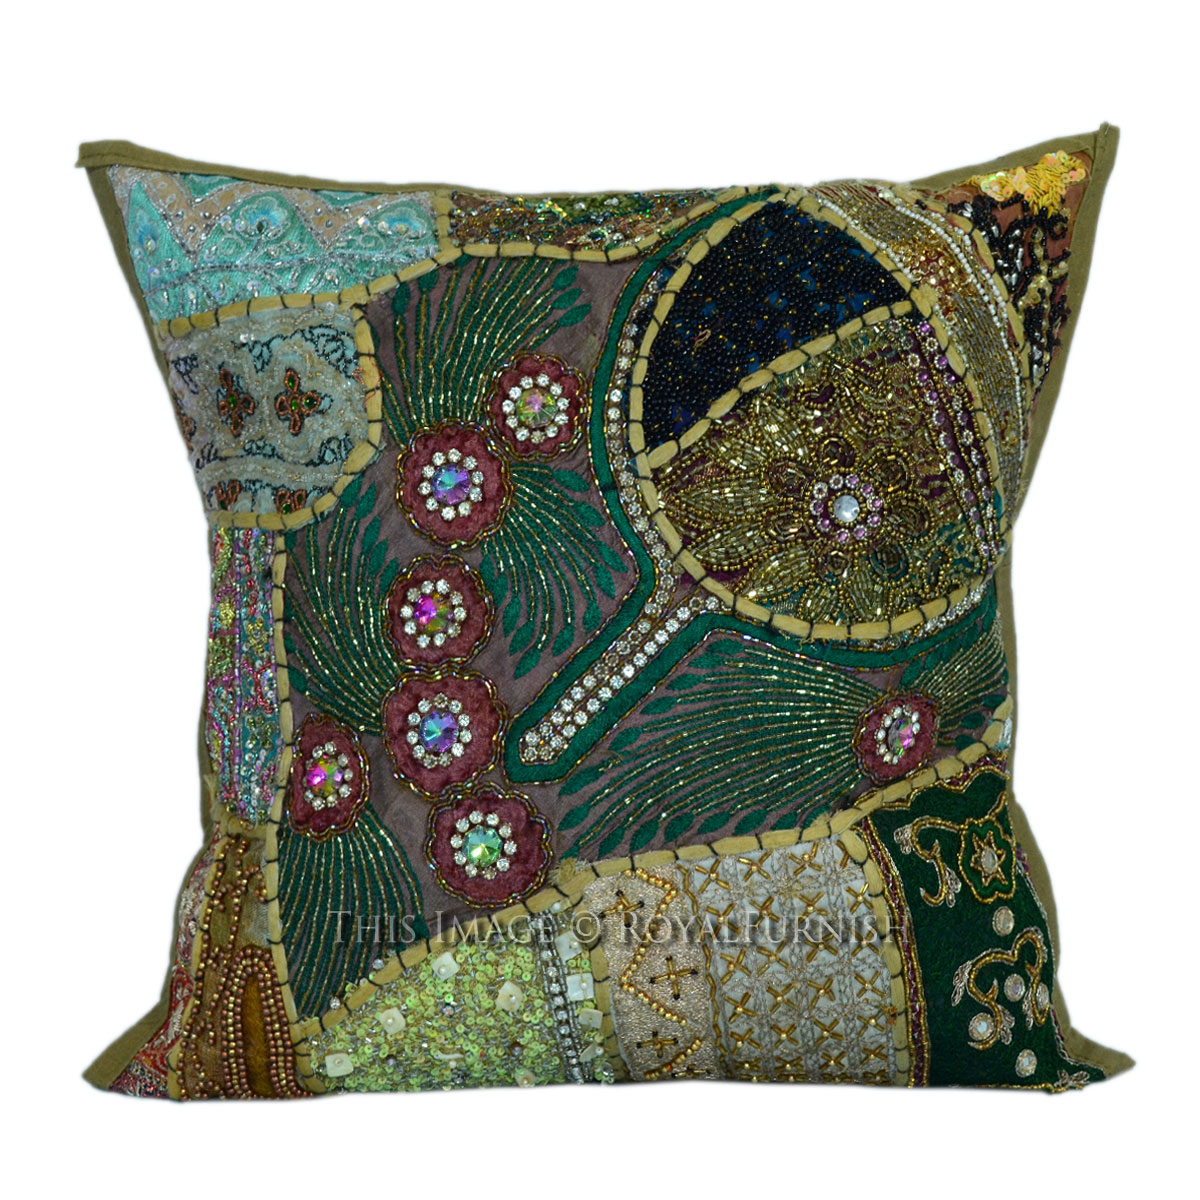 Decorative Pillows With Sequins : 16x16 Decorative Handmade Beaded Sequin Square Pillow Cover - RoyalFurnish.com